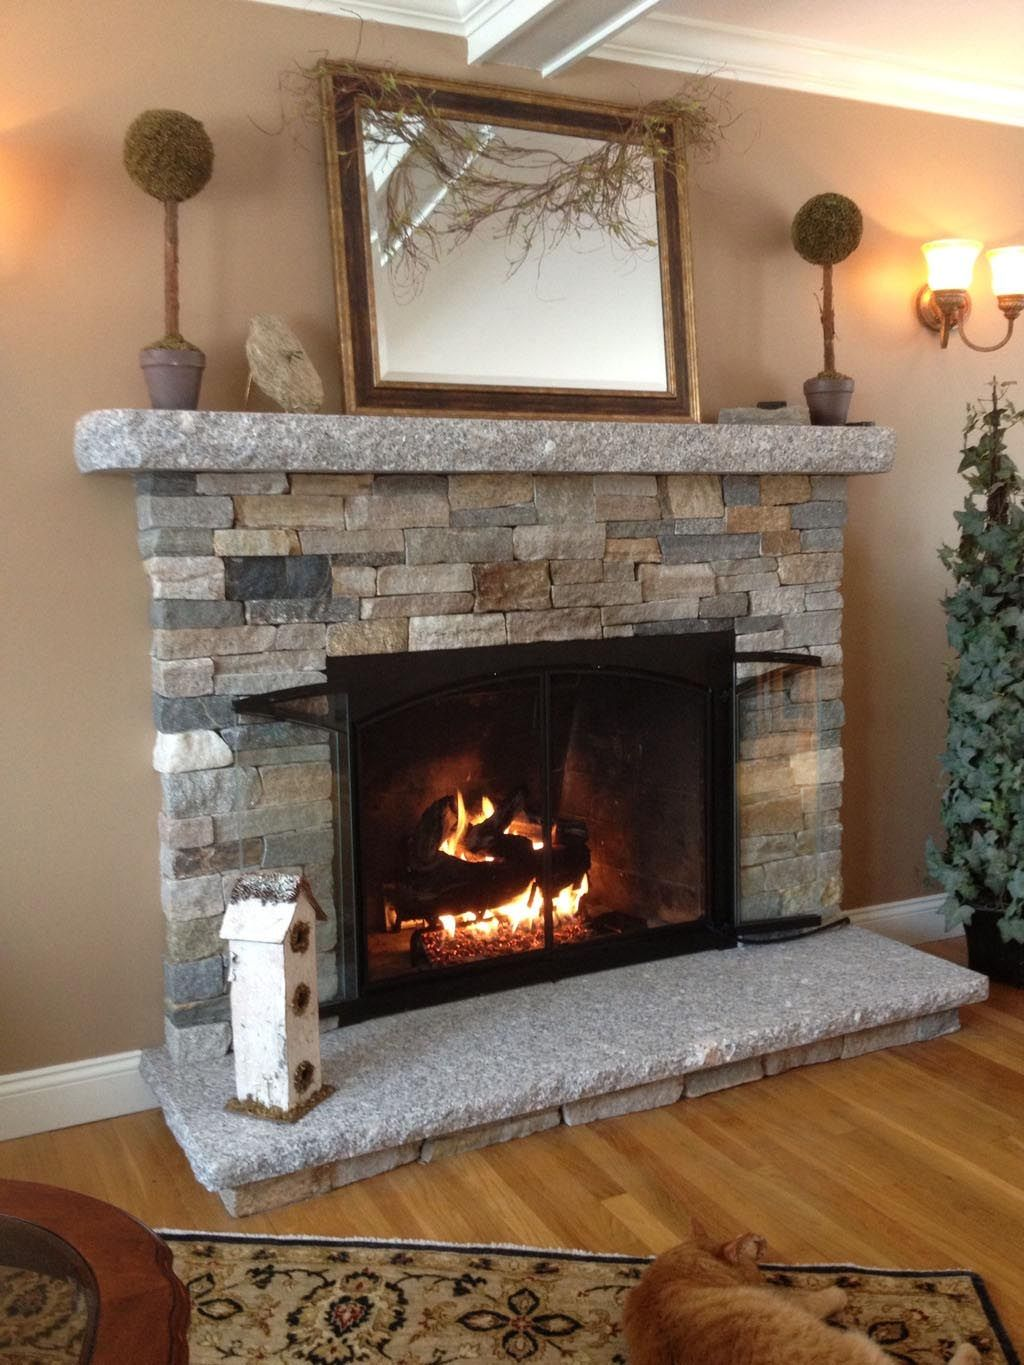 These Cozy Fireplace Ideas Will Make You Want To Redecorate